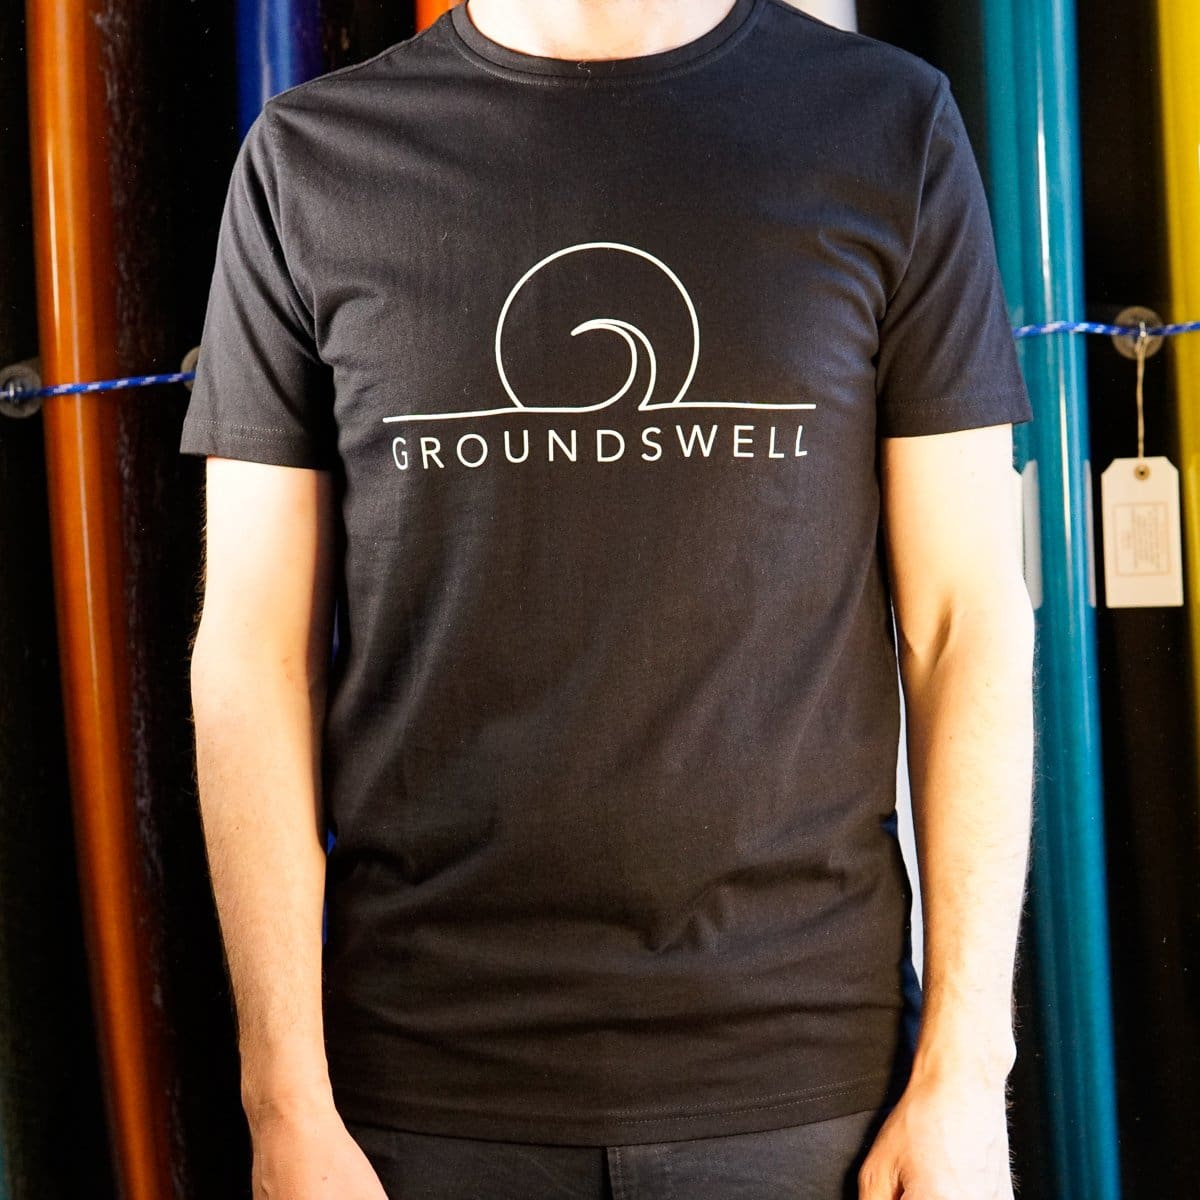 Groundswell Eco T-shirt - s / Black